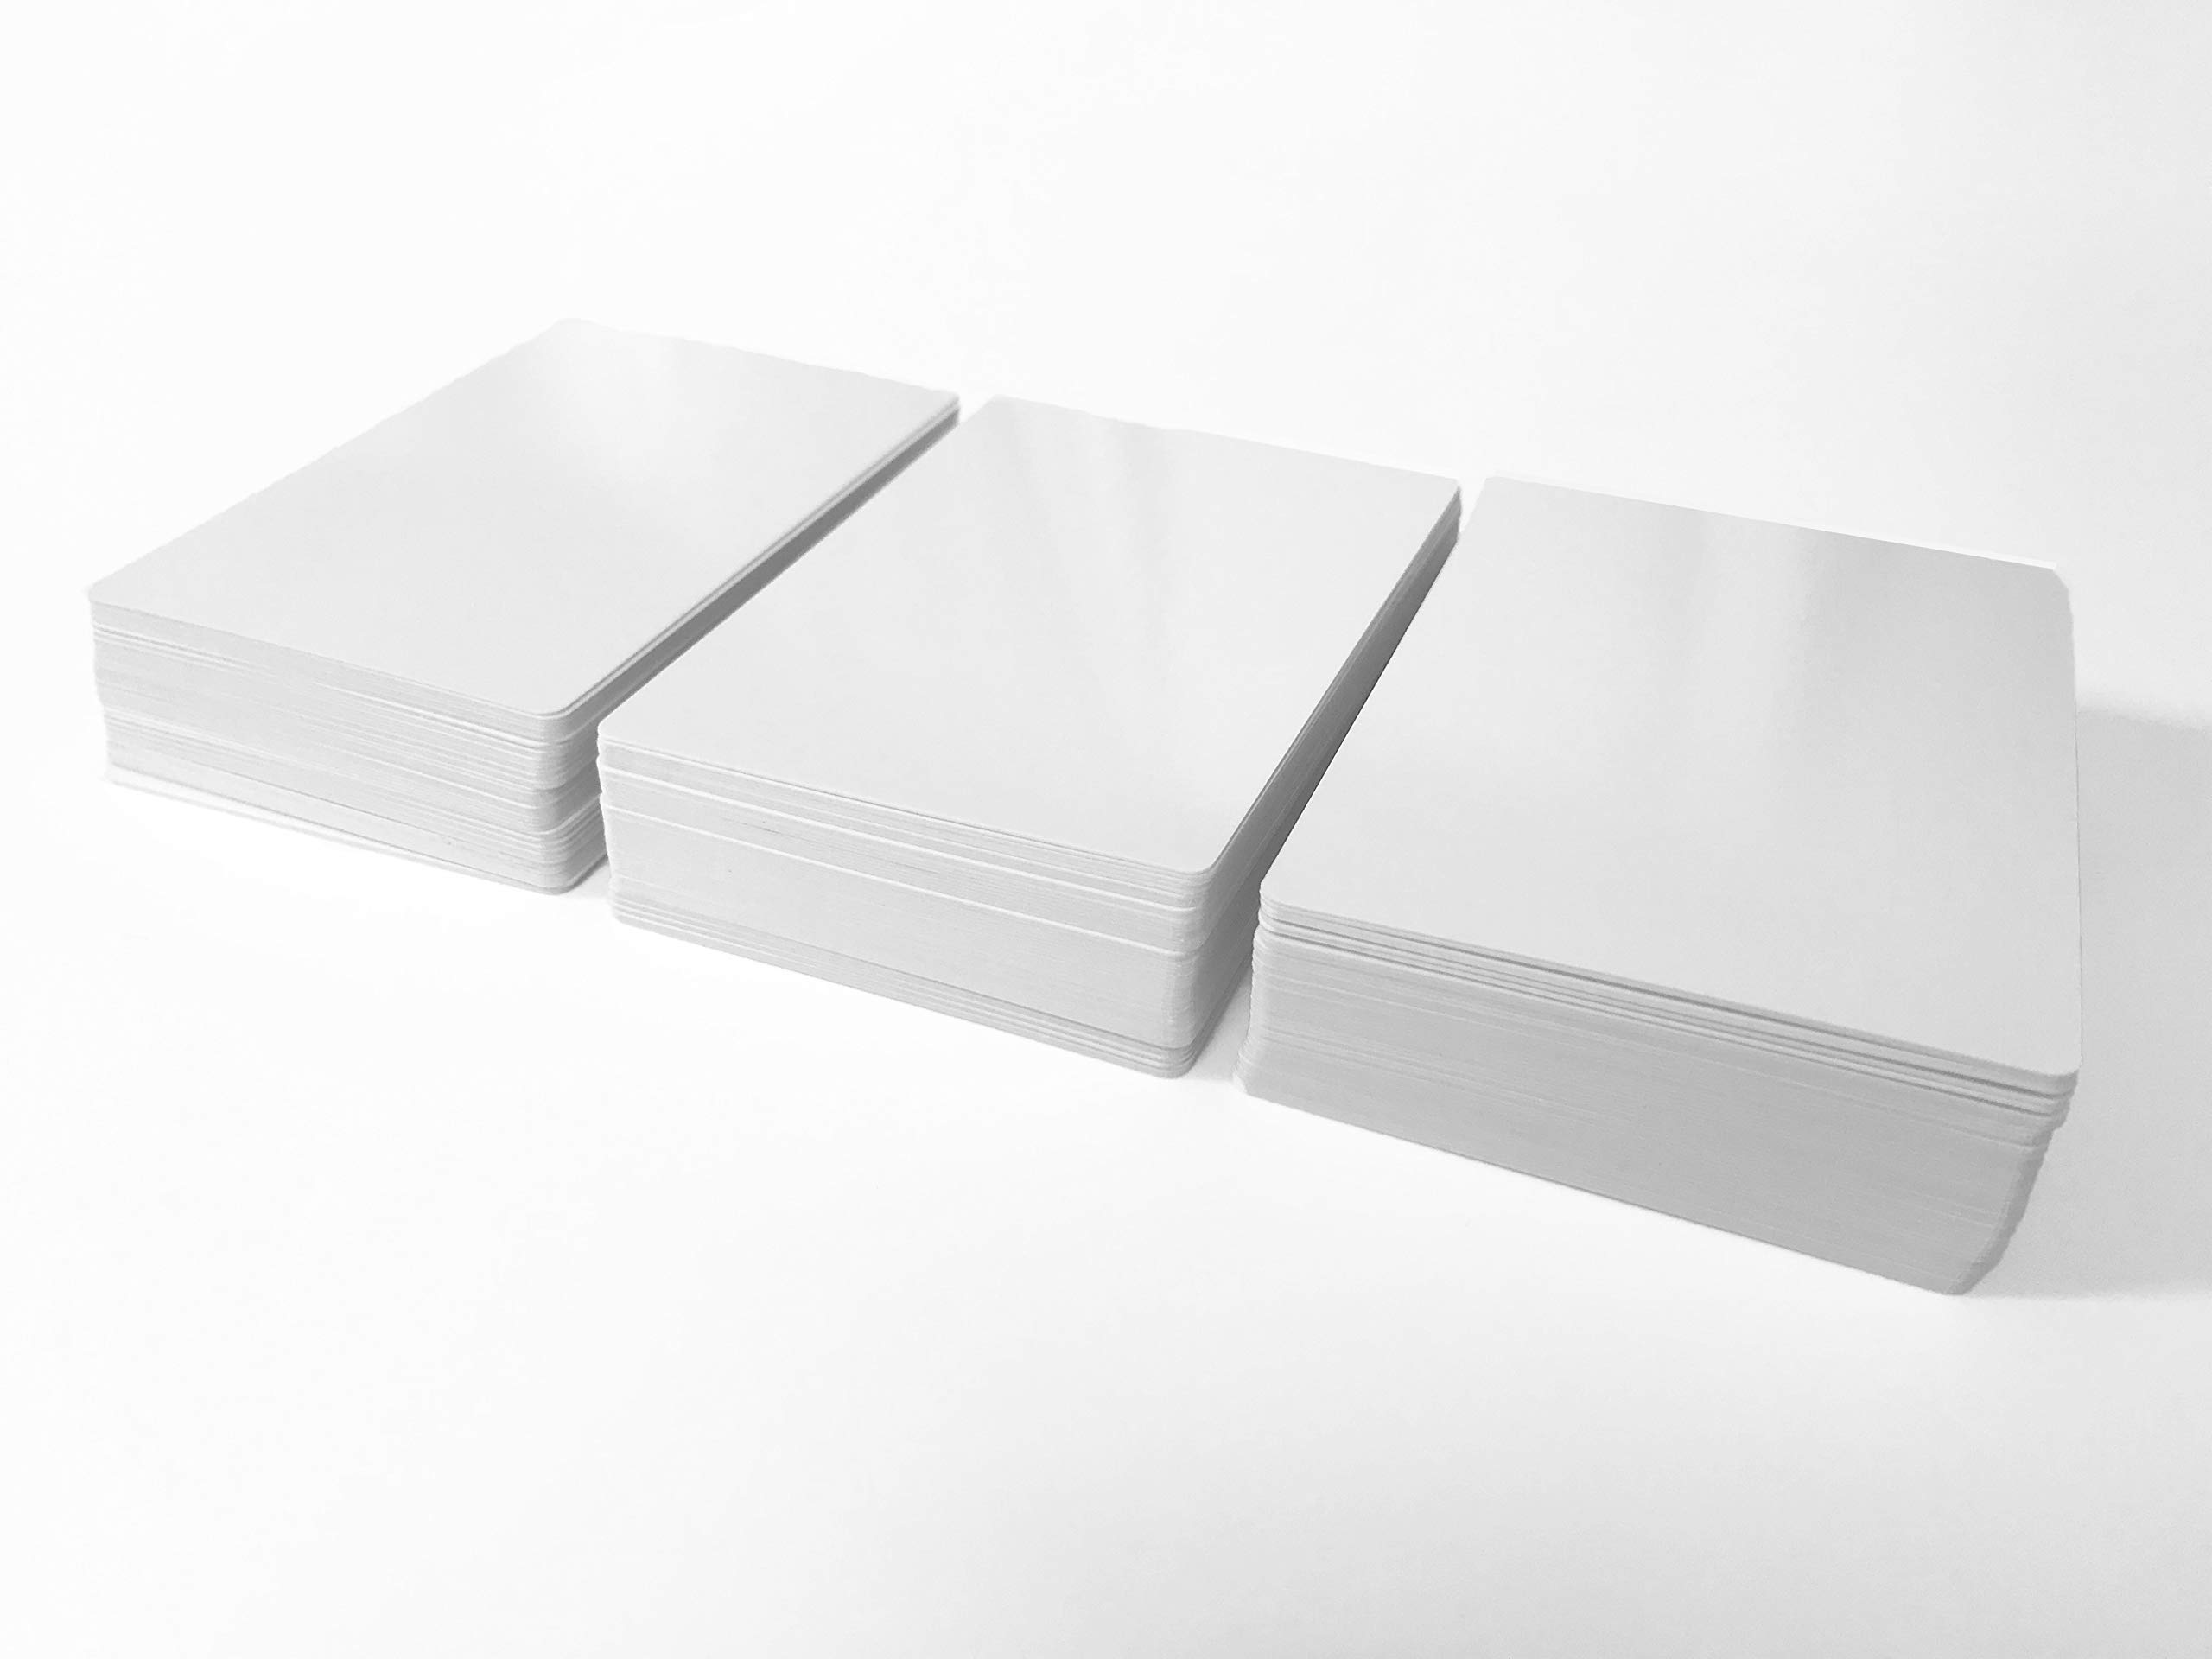 Apostrophe Games Dry Erase Blank Cards (Poker Size) (162 Cards)